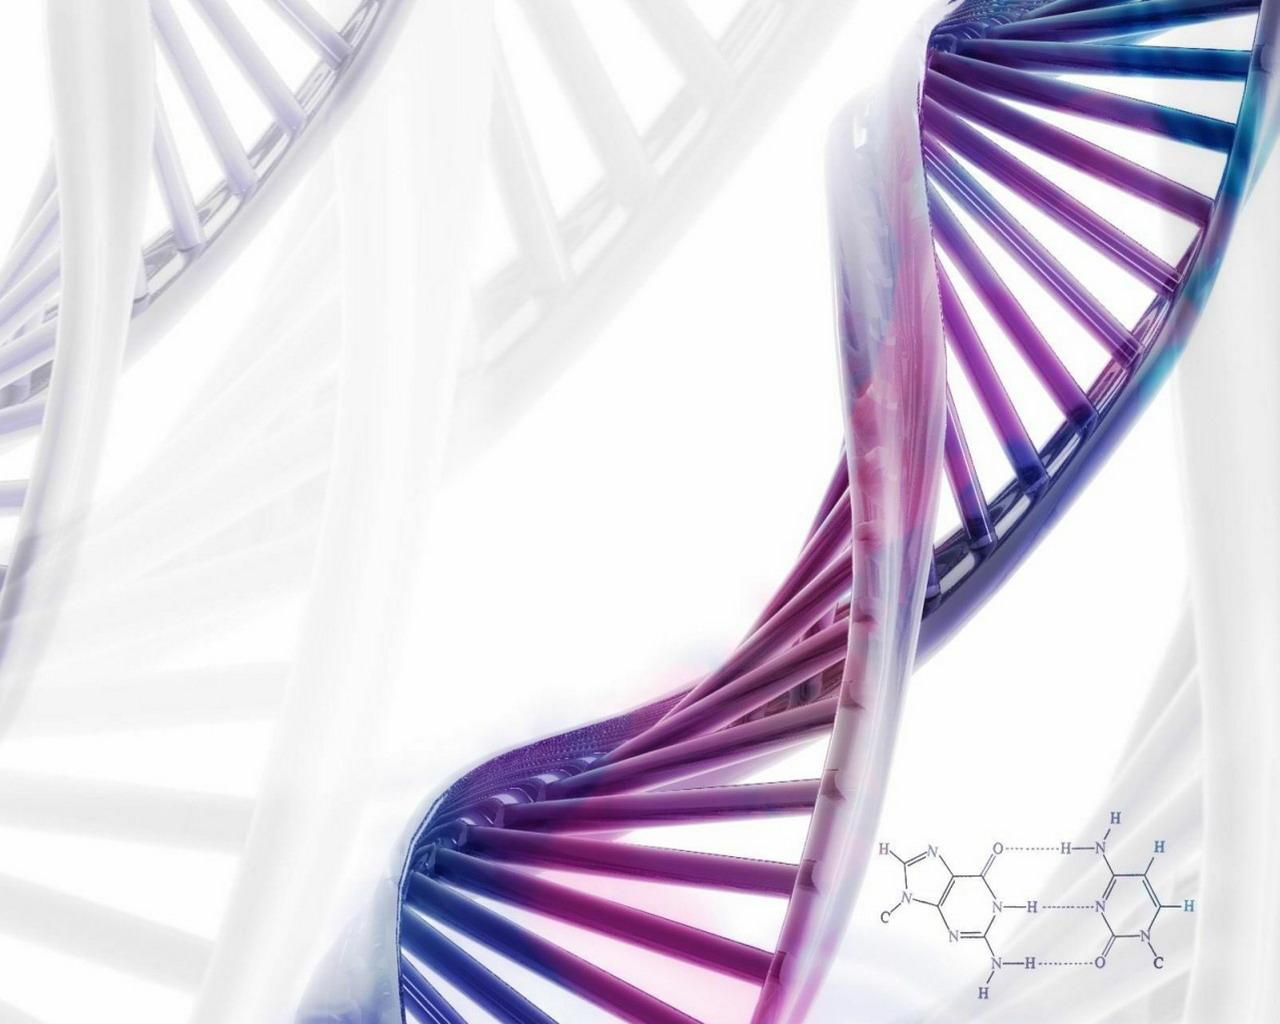 DNA Structure wallpapers HD quality